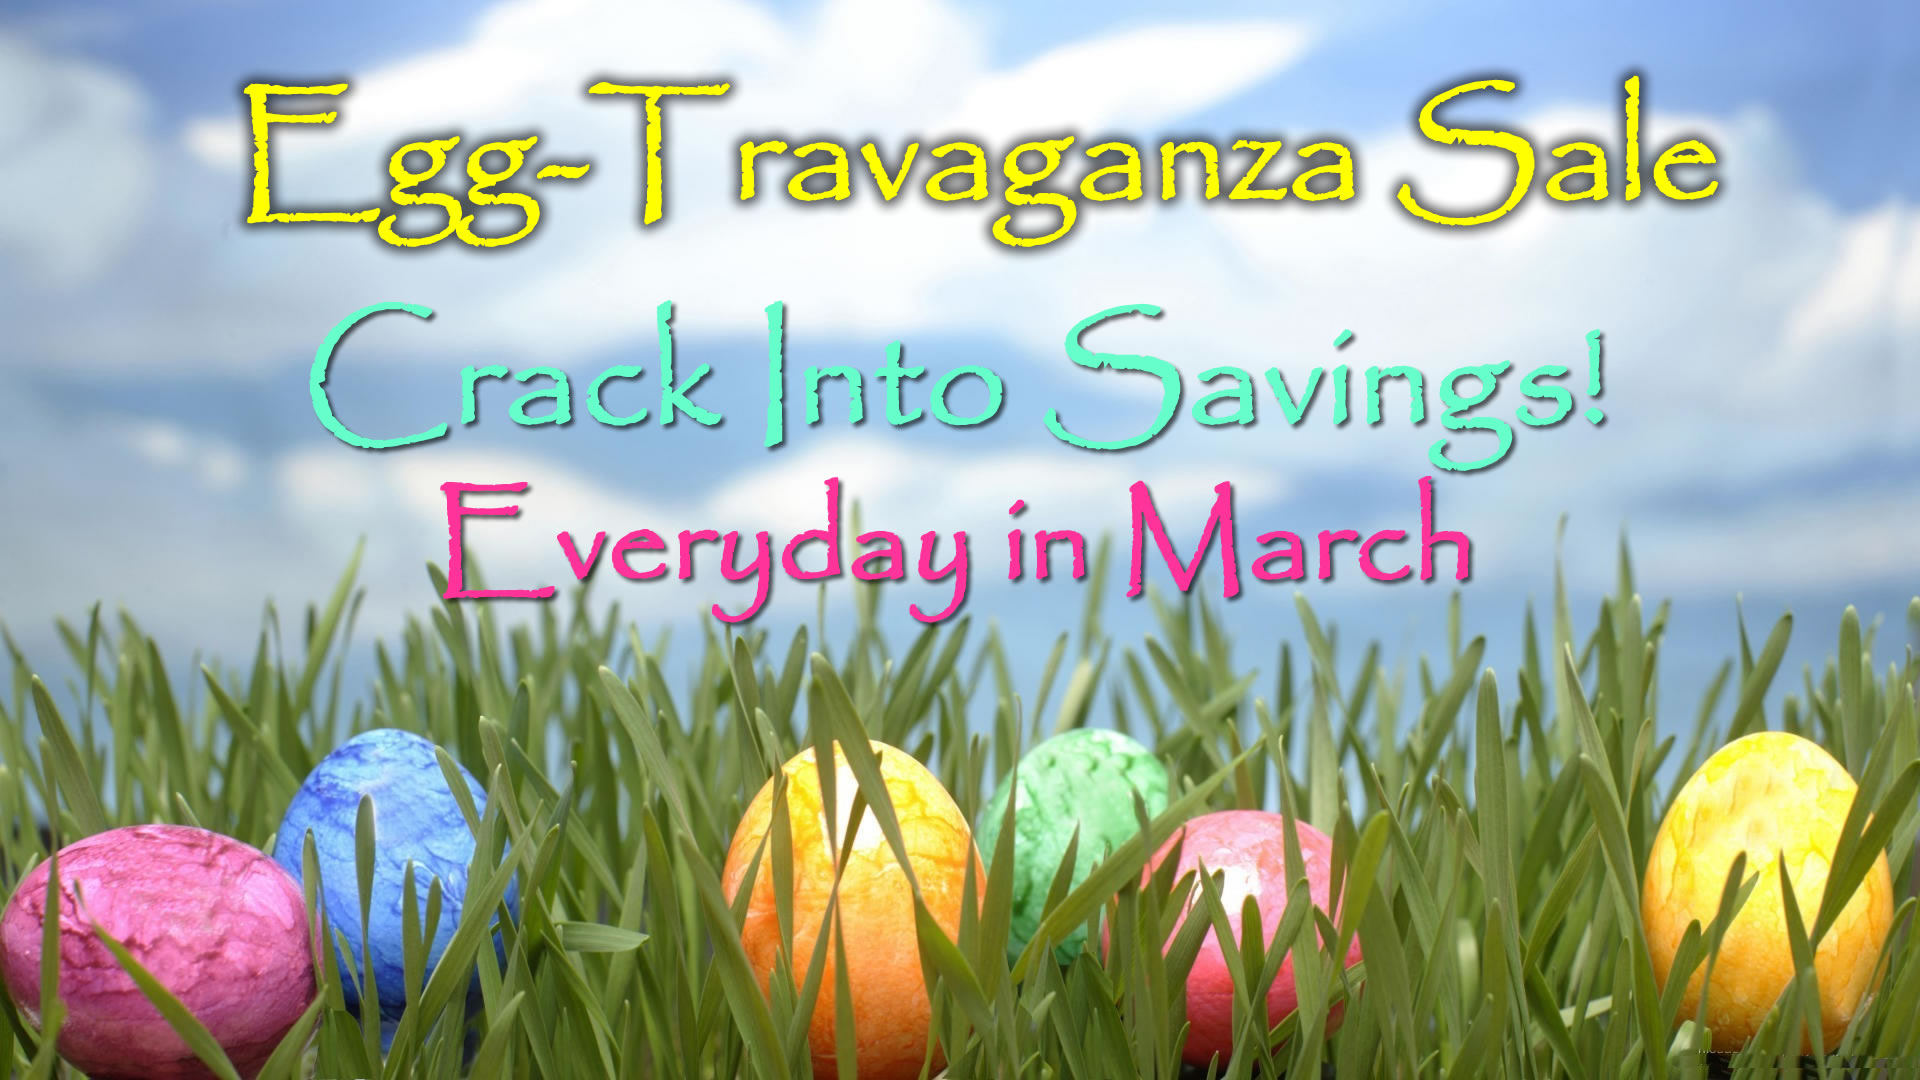 Crack into savings date